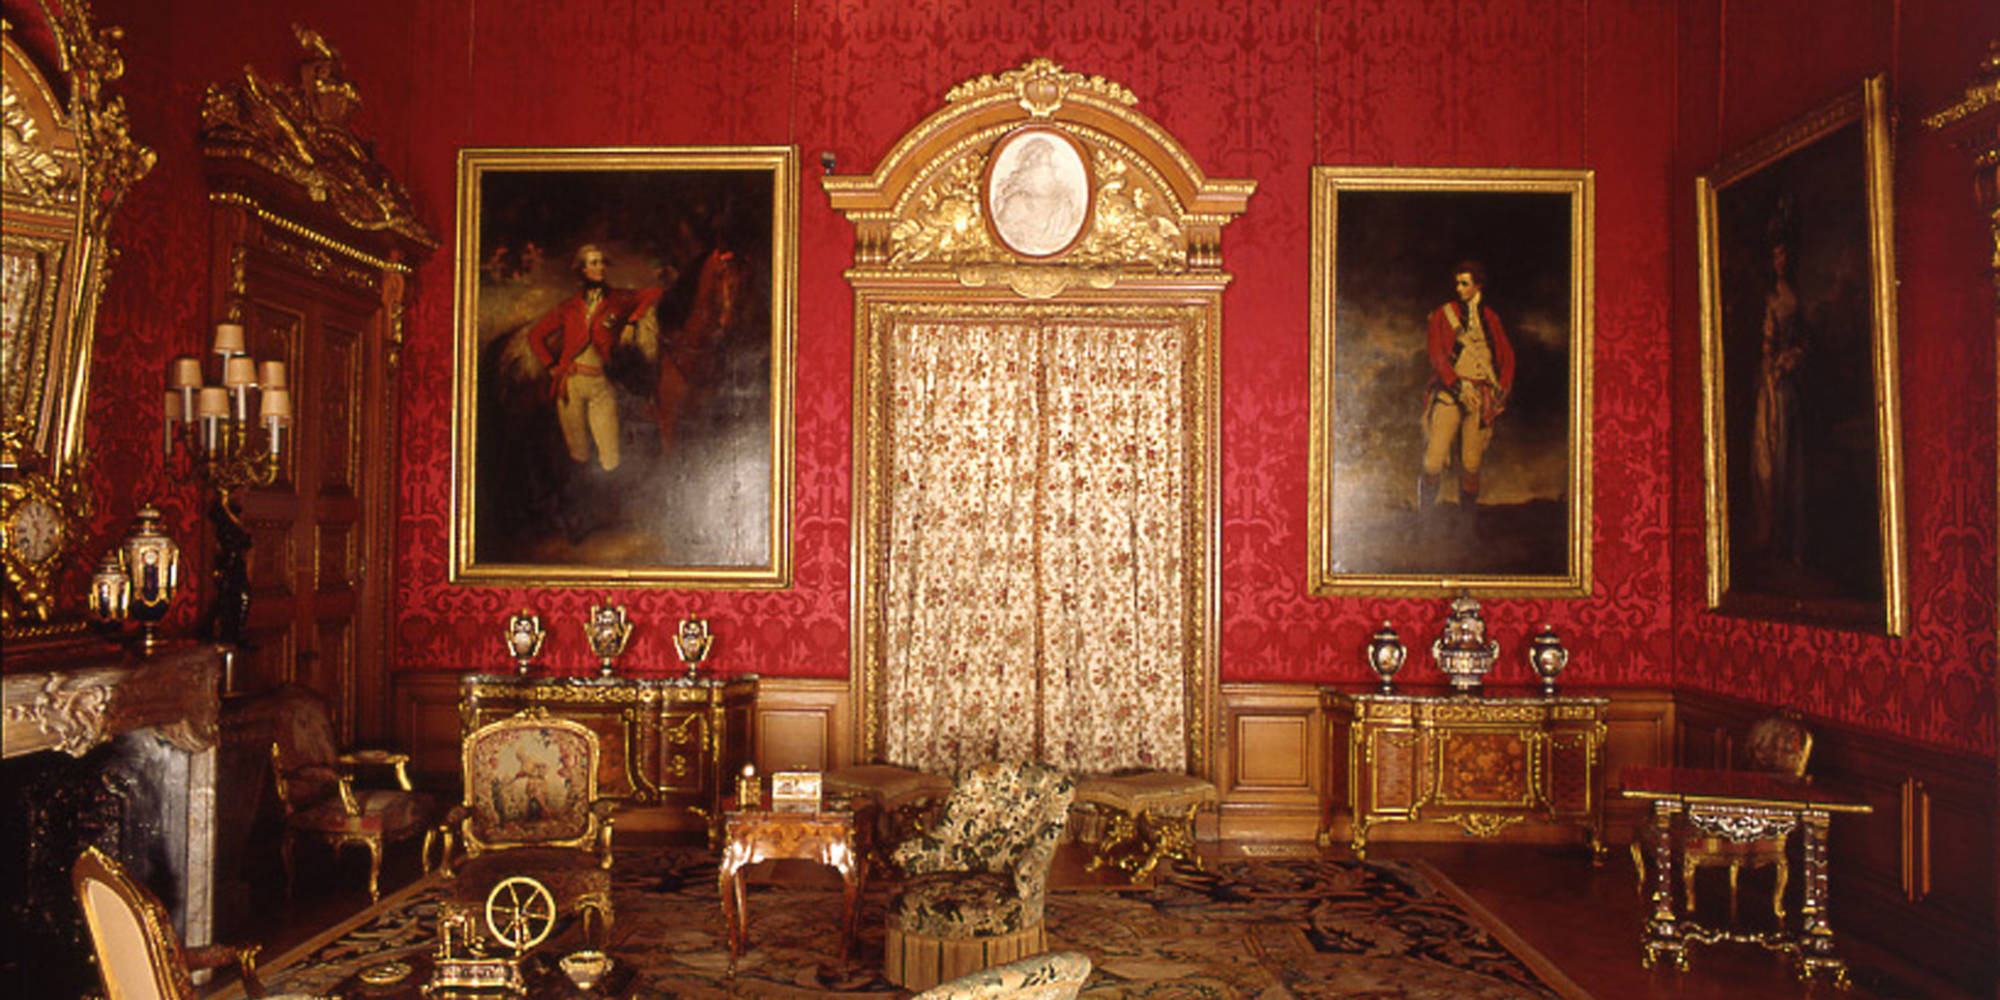 Reynolds's great rival, Thomas Gainsborough (1727-1788), hangs to the other side of the door in Waddesdon's Red Drawing Room (1781)